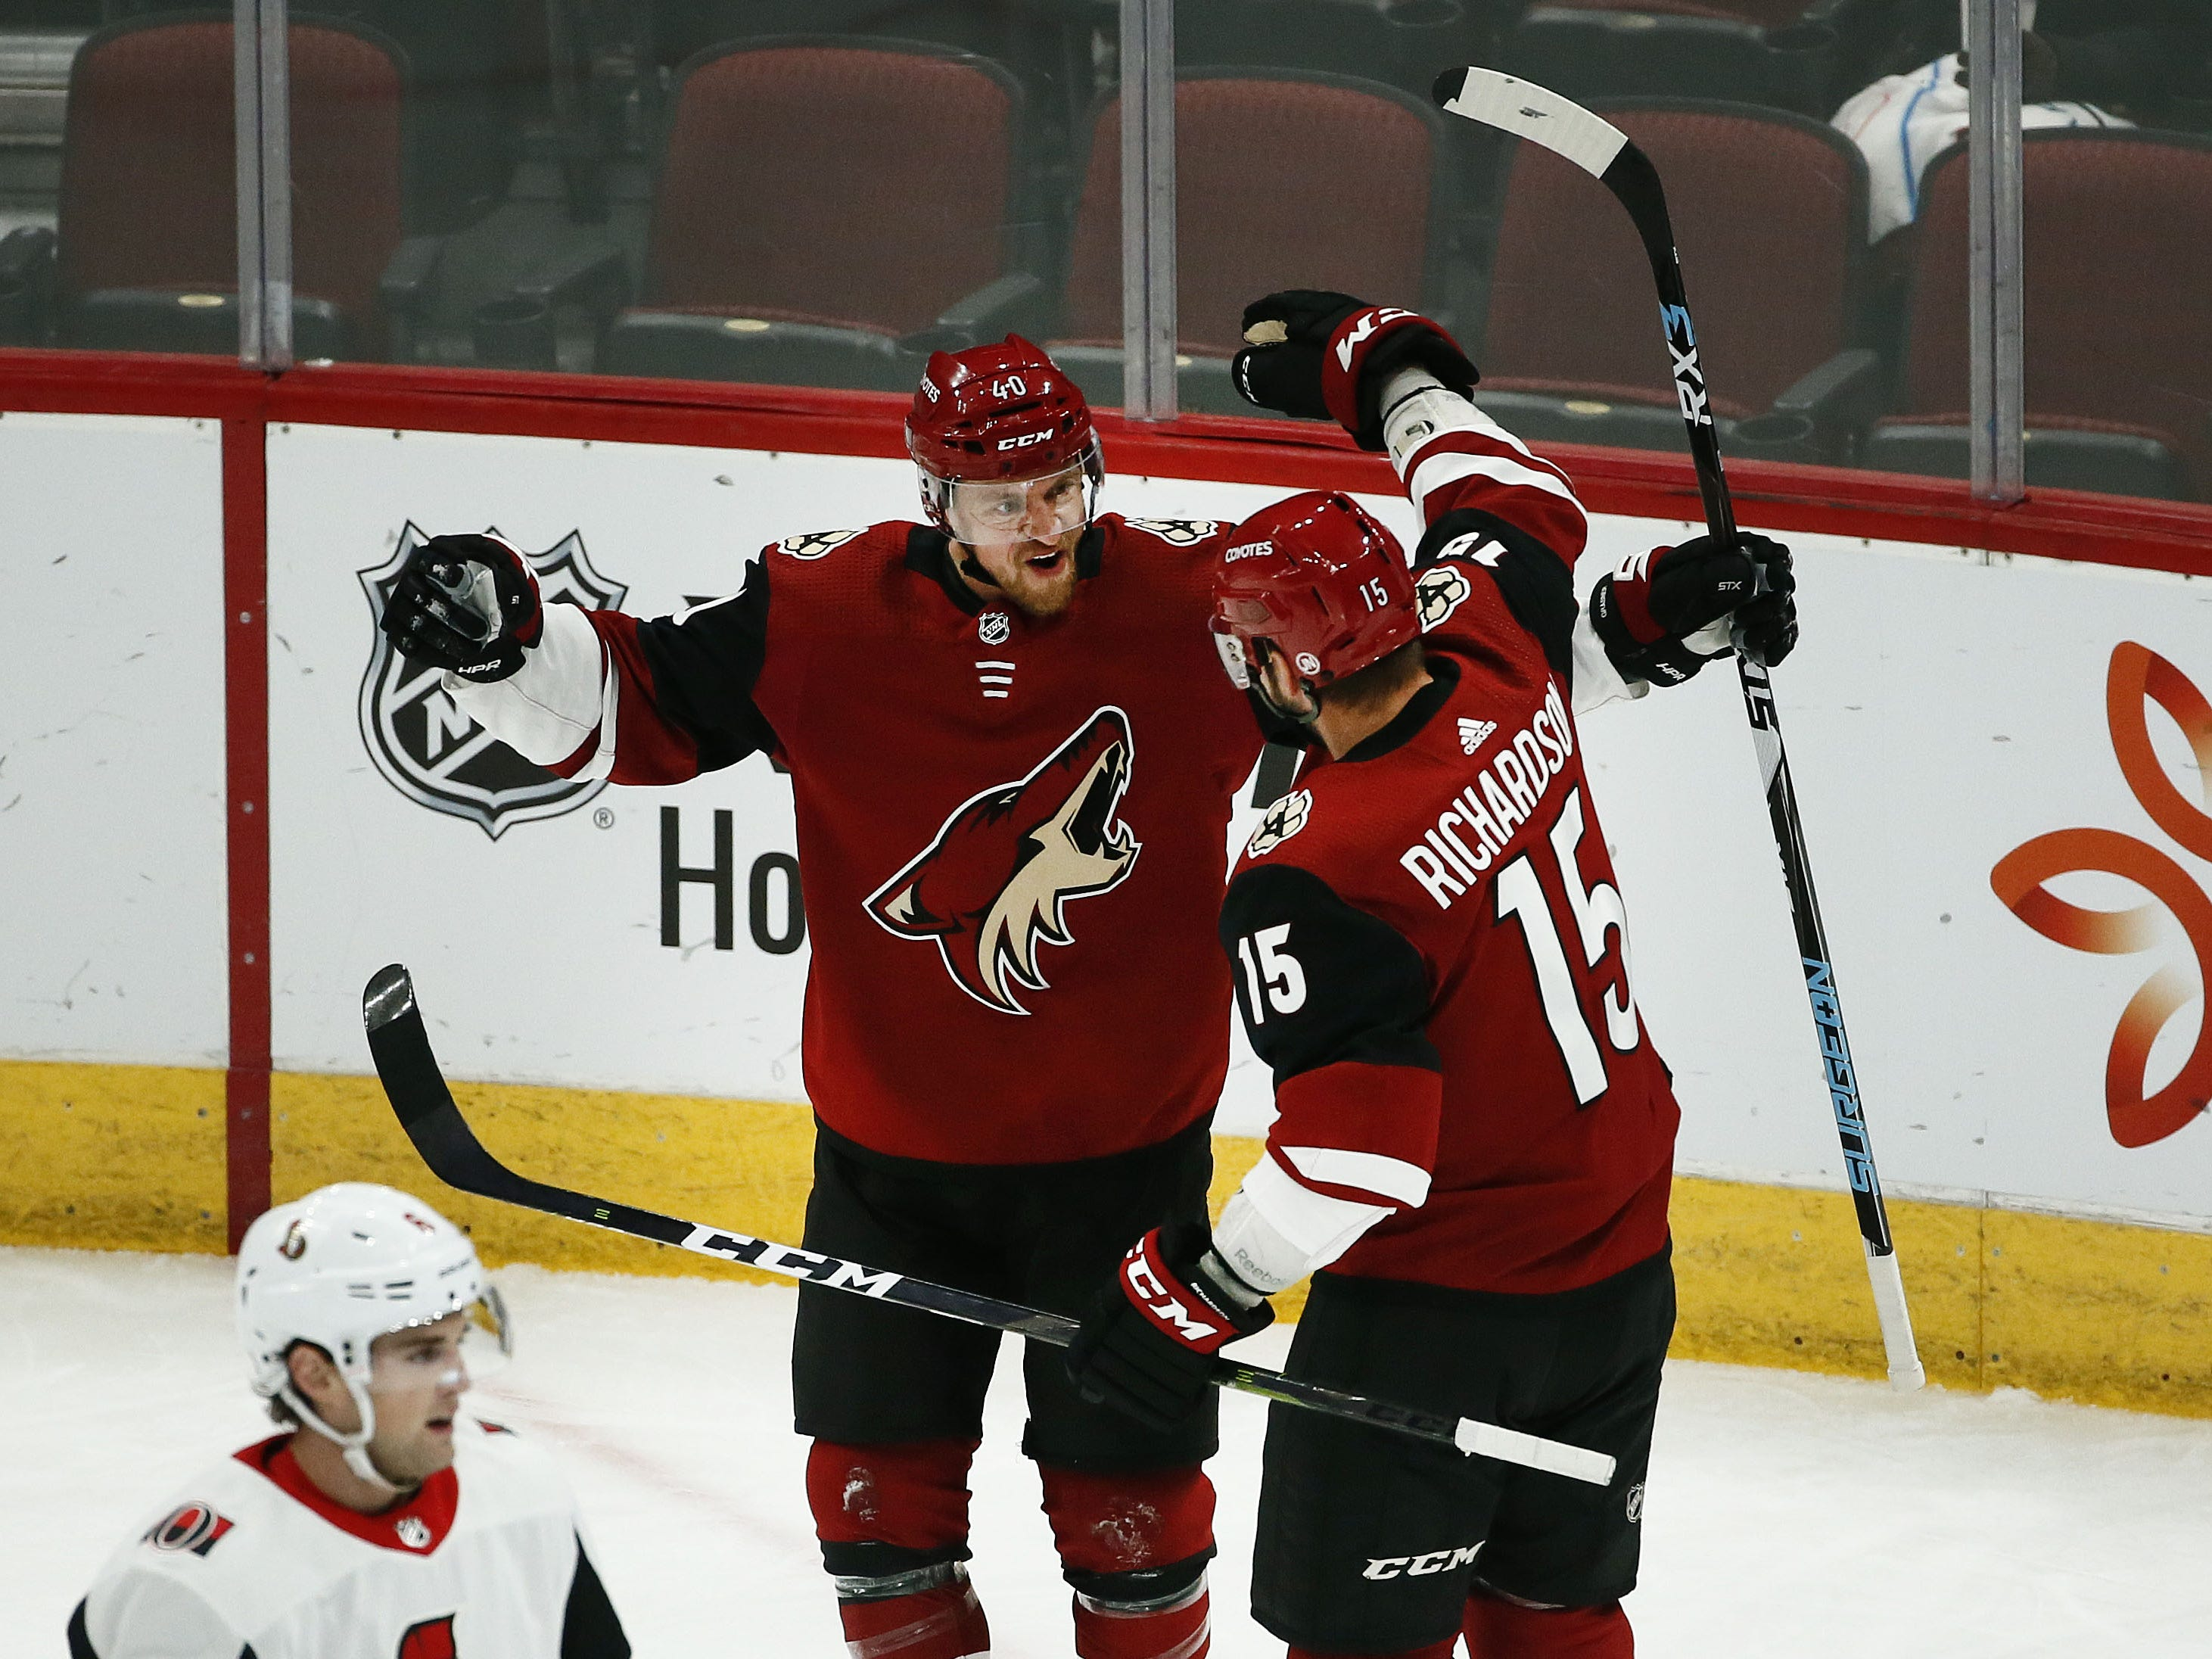 Arizona Coyotes center Brad Richardson (15) reacts after scring a goal with Michael Grabner (40) against the Ottawa Senators in the first period on Oct. 30, 2018 at Gila River Arena.